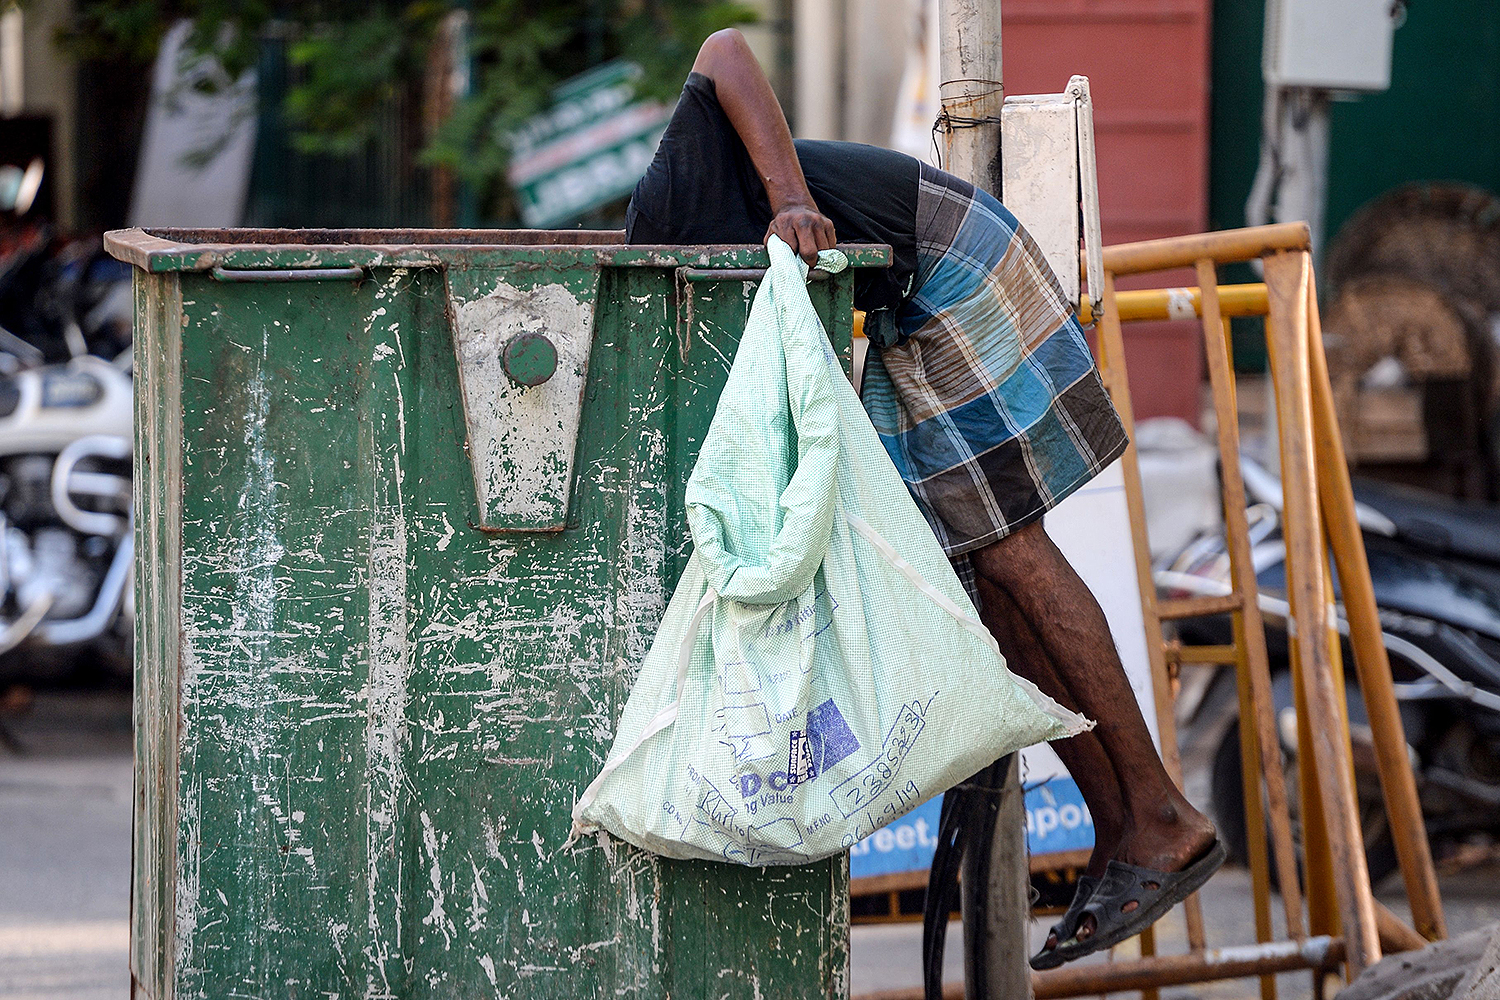 A man checks a waste bin for reusable items during a government-imposed lockdown in Chennai, India, on April 24. ARUN SANKAR/AFP via Getty Images